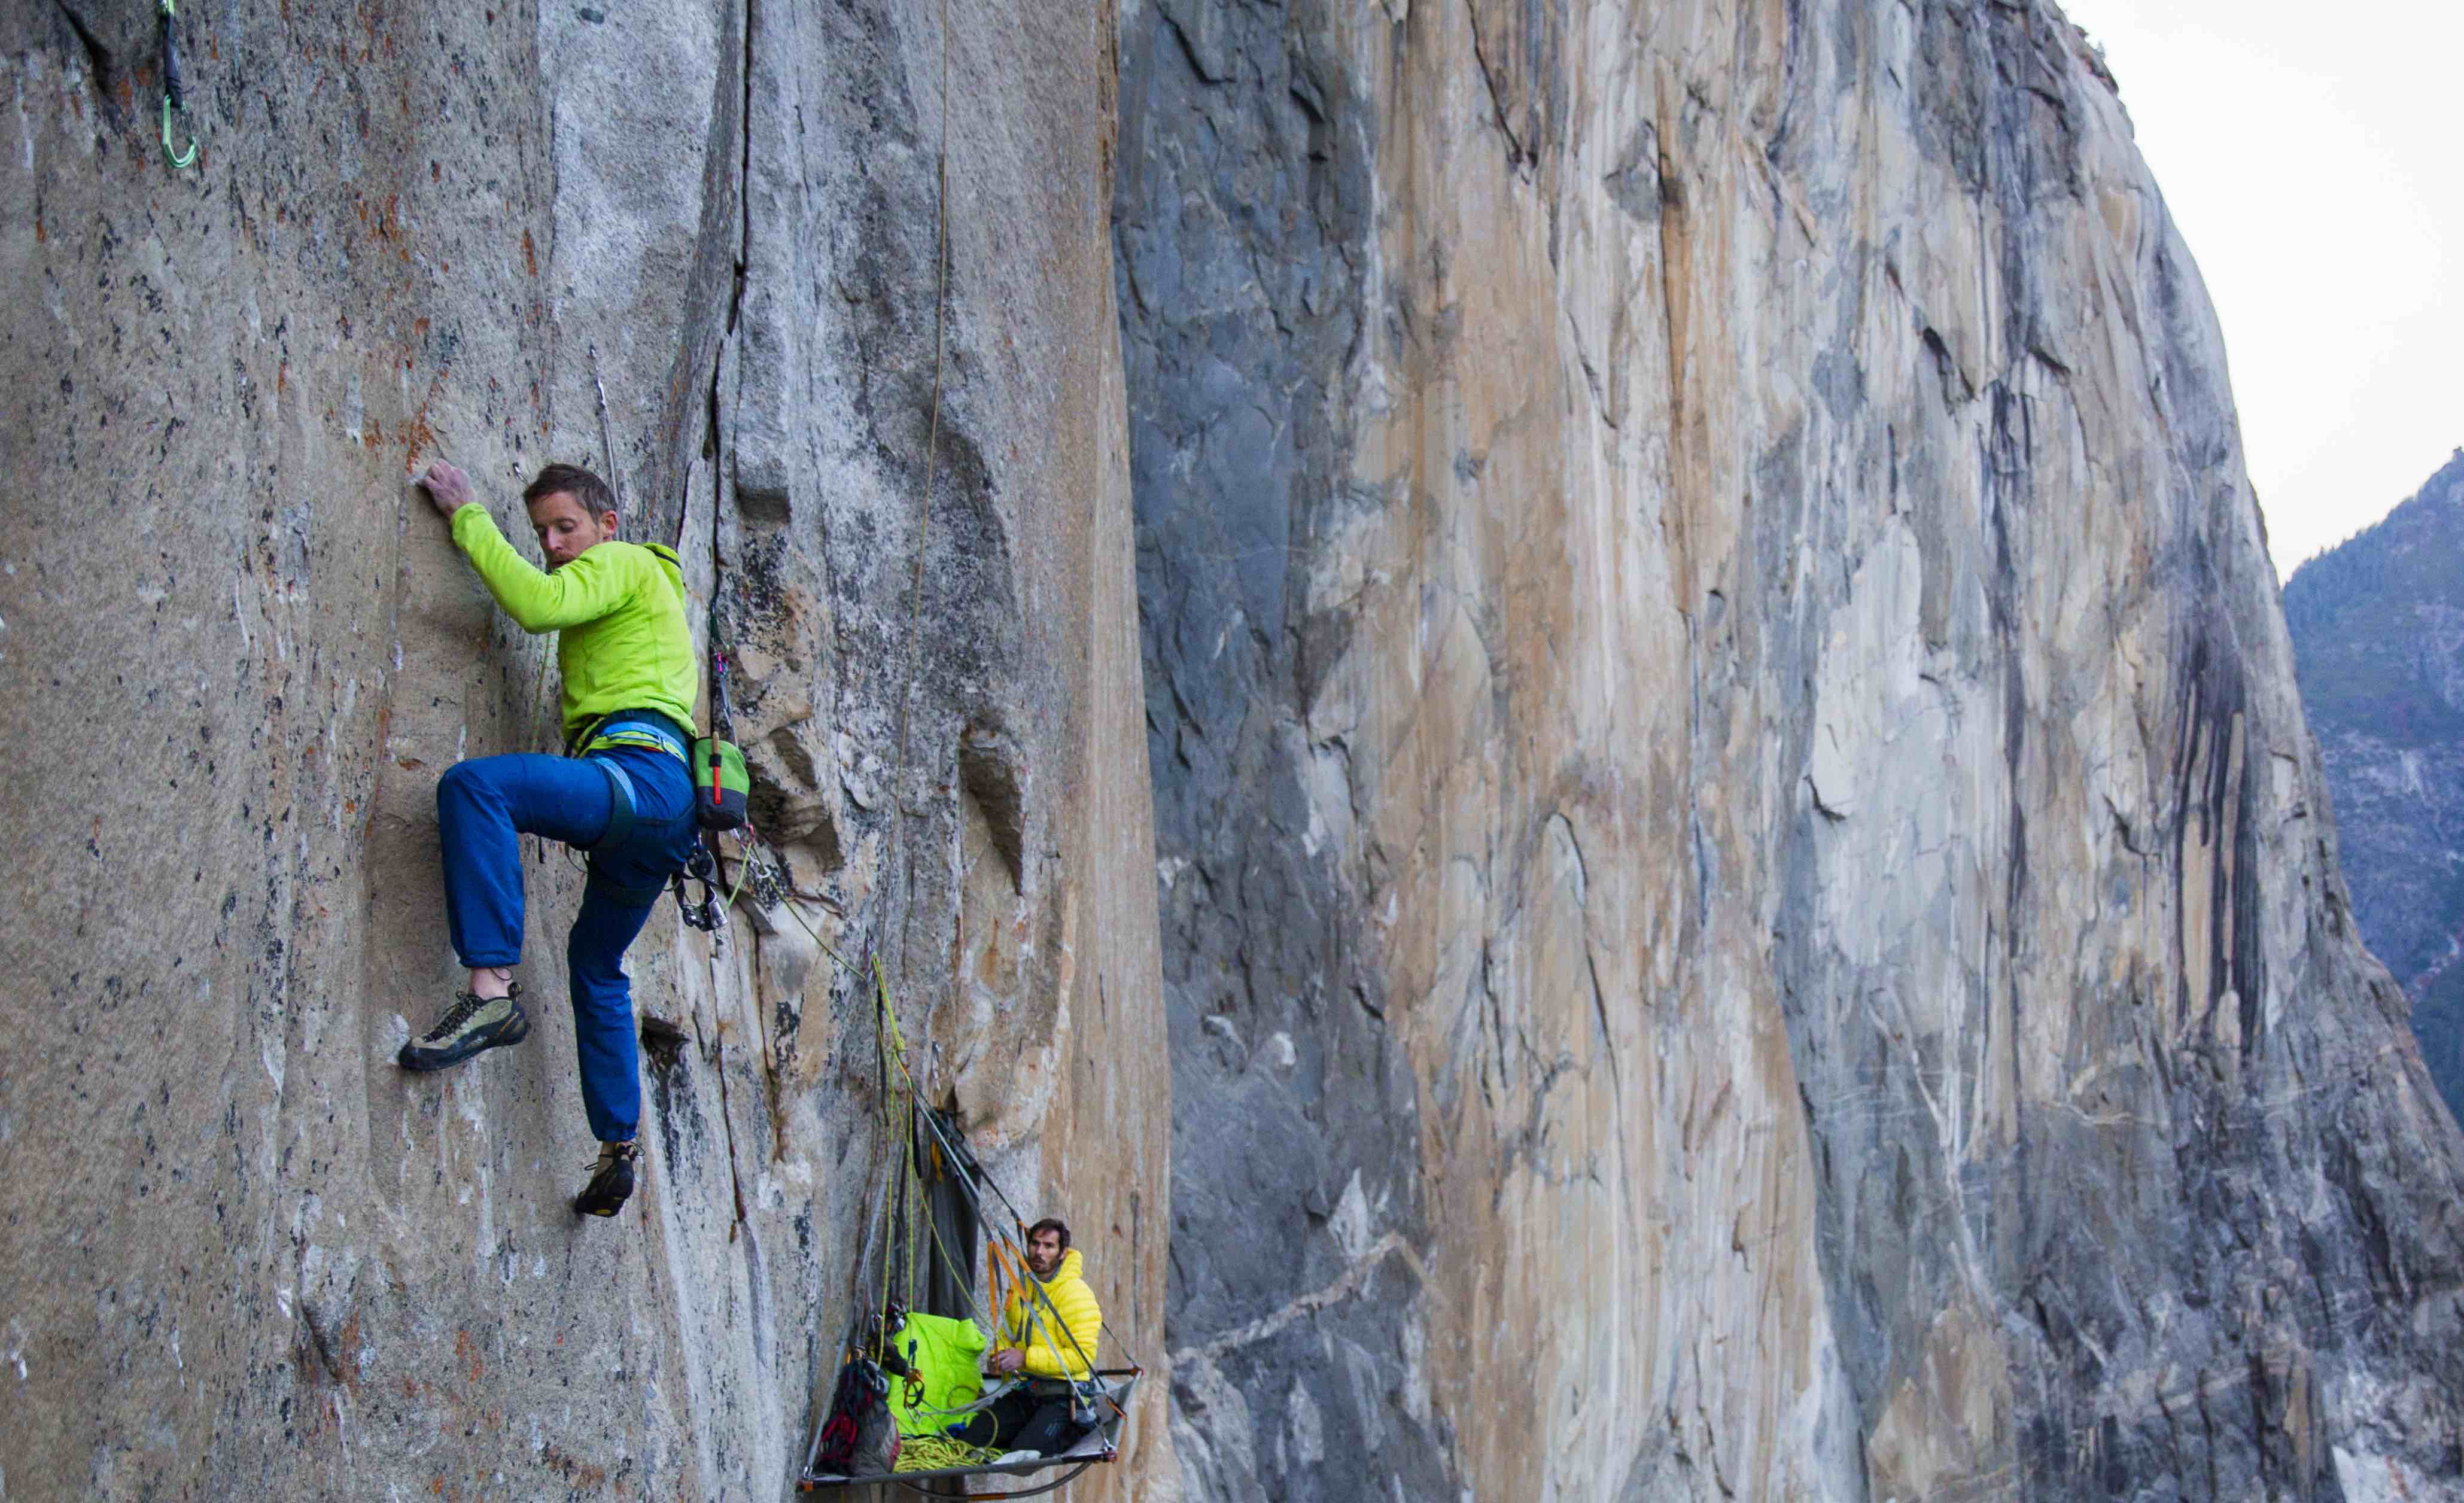 Tommy Caldwell on the first free ascent of the Dawn Wall, Yosemite Valley.